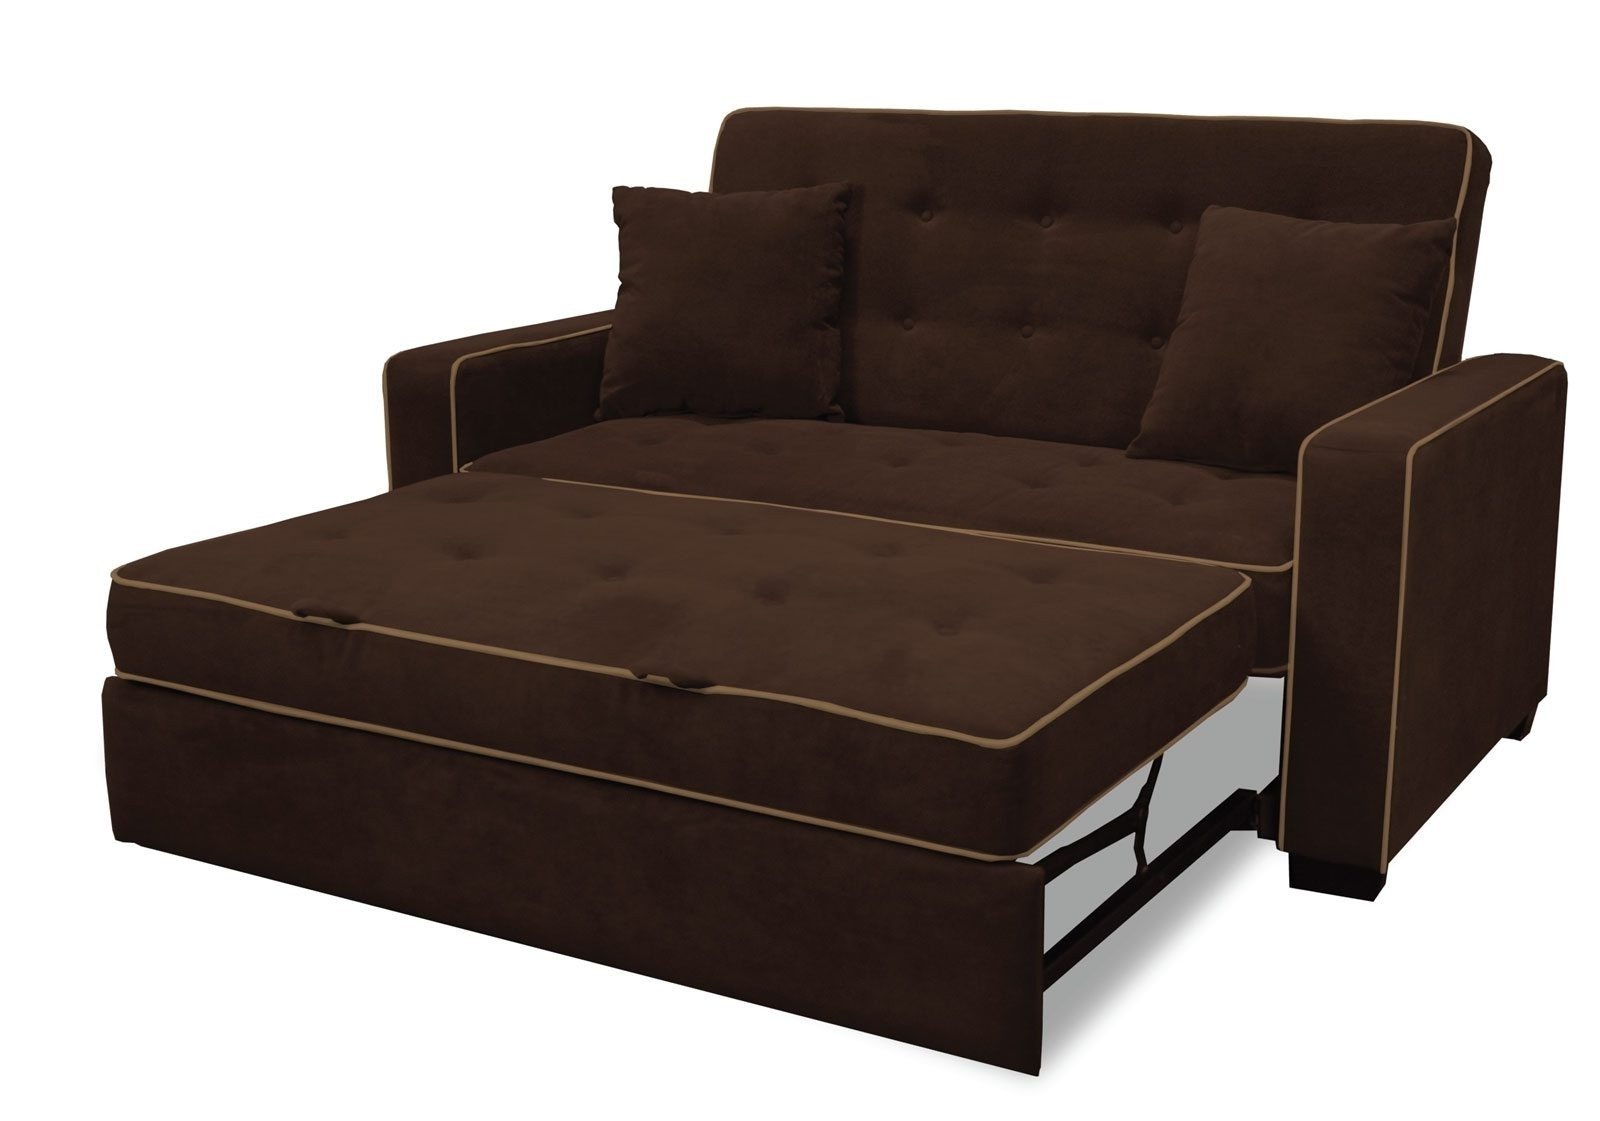 Ikea Loveseat Sleeper Sofas Throughout Most Up To Date Elegant Loveseat Sleeper Sofa Ikea Sofas (Gallery 4 of 15)